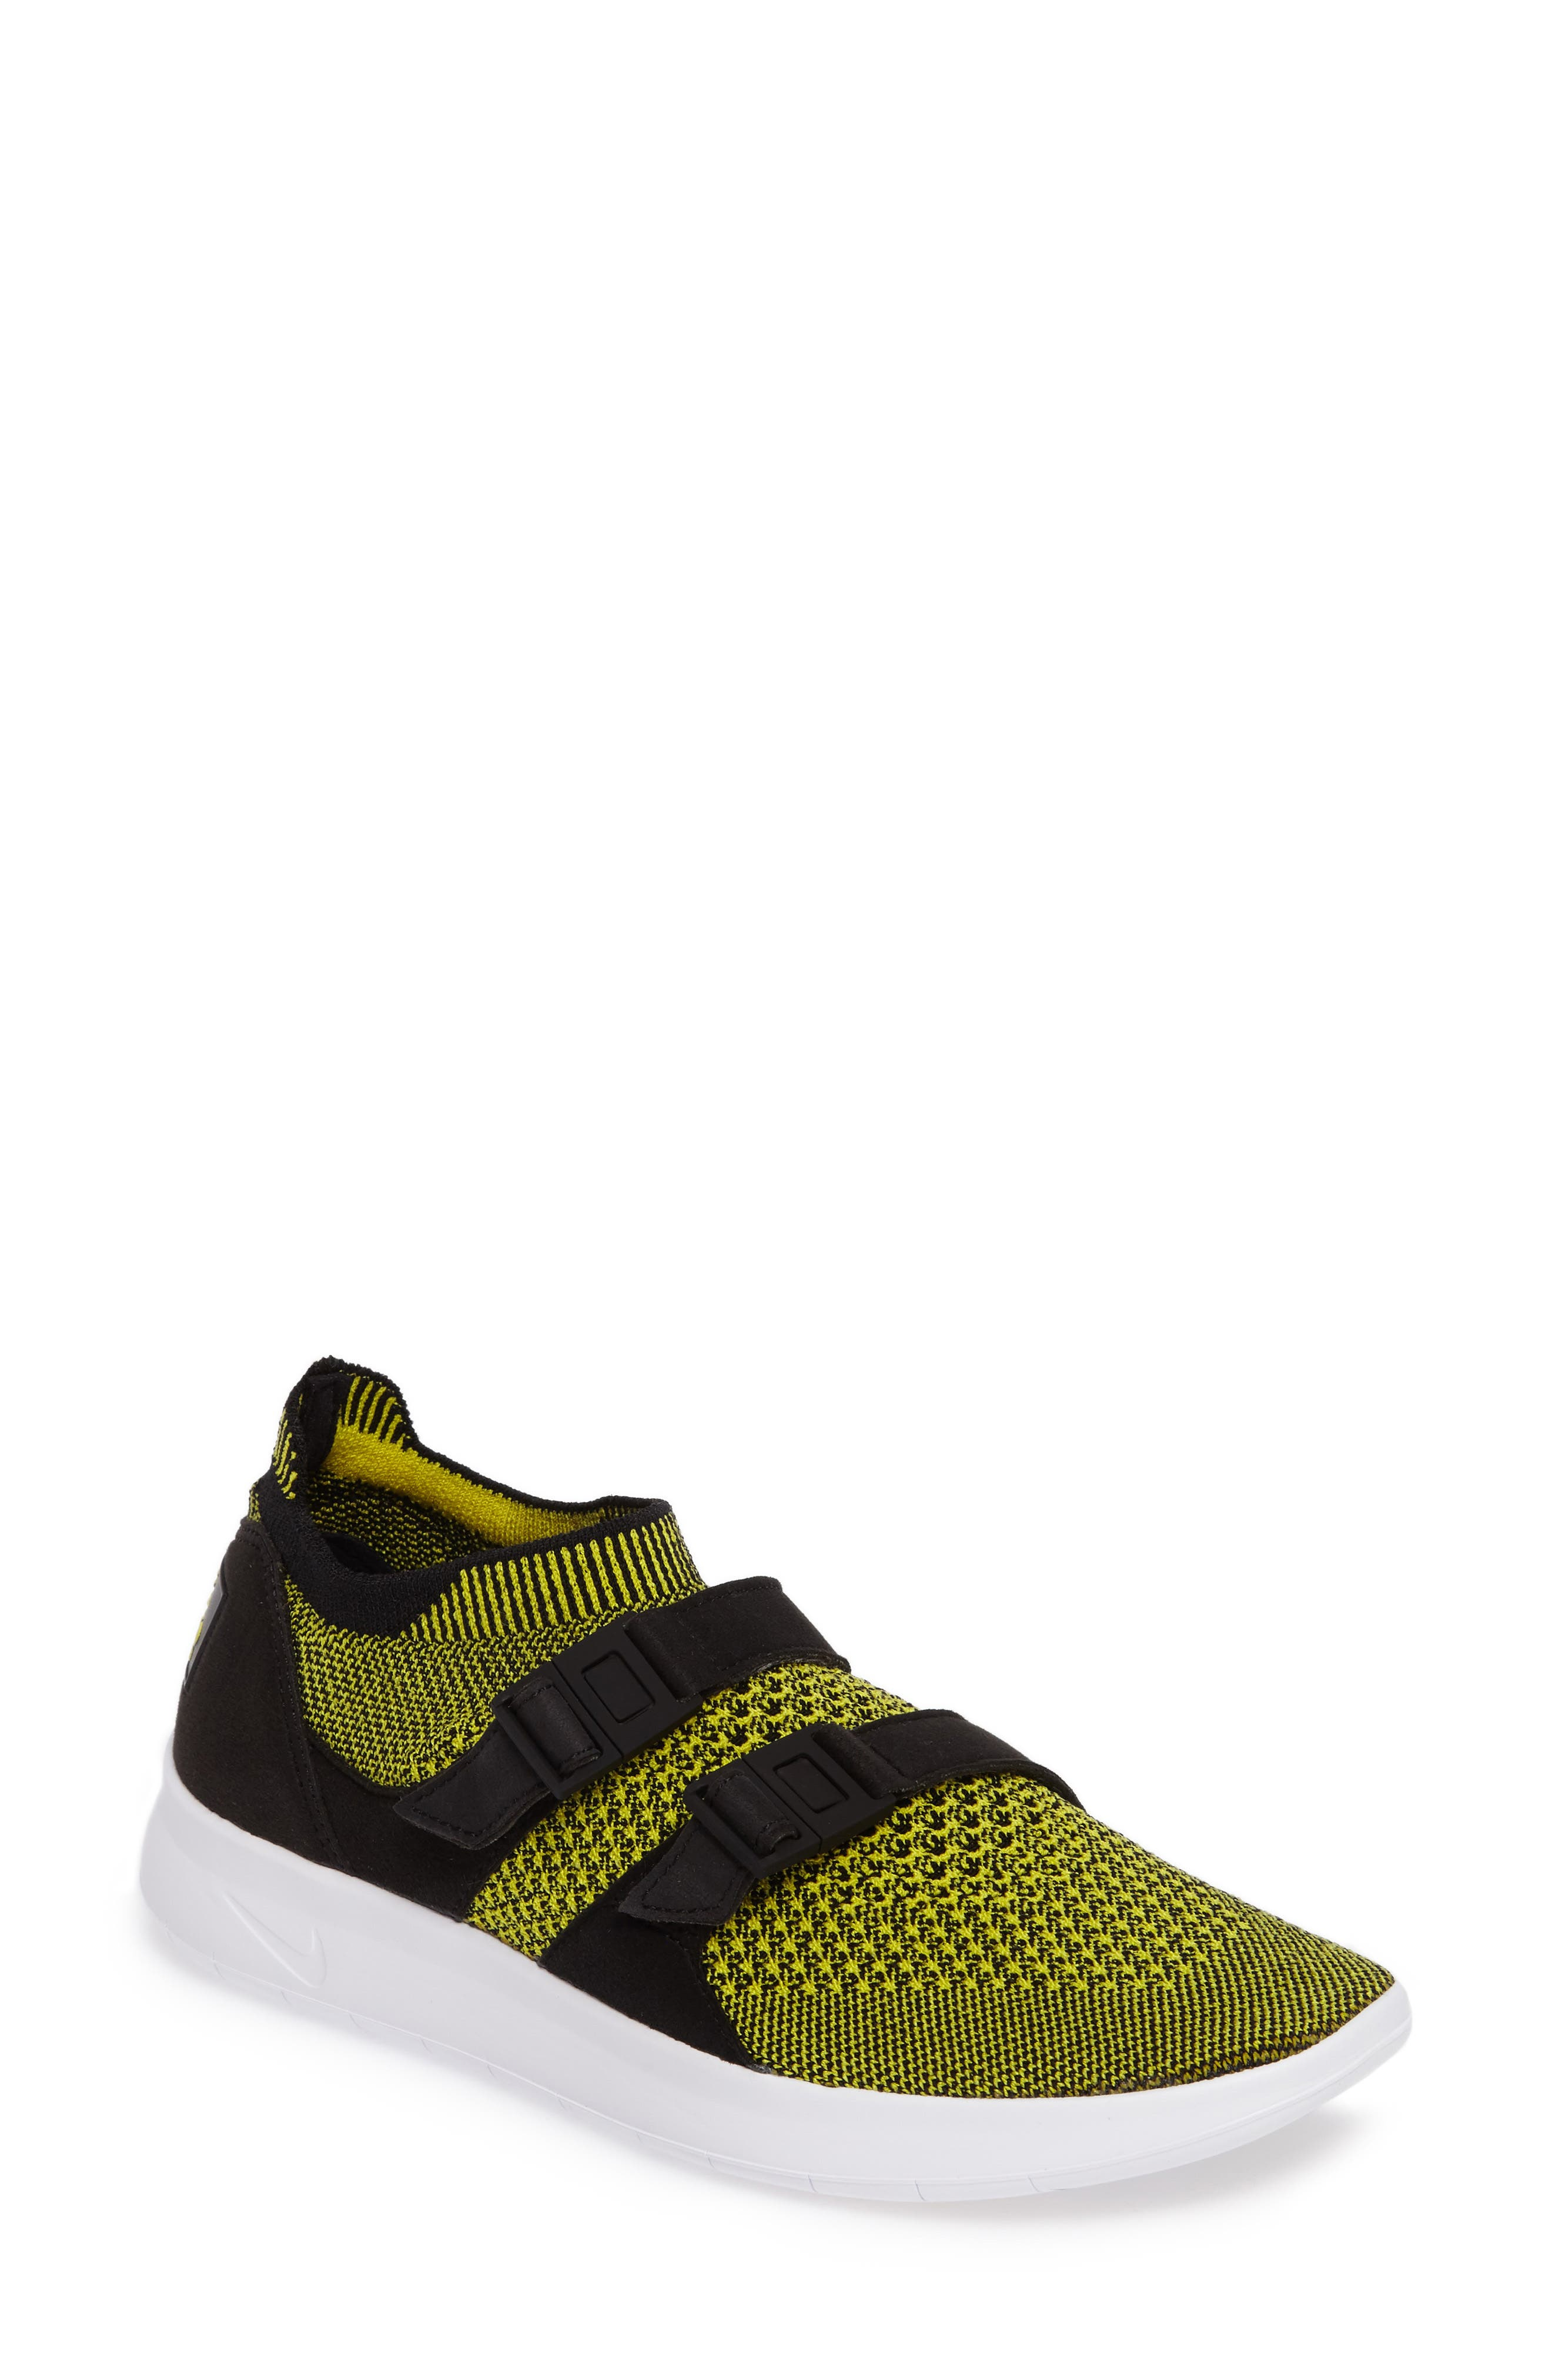 Main Image - Nike Air Sock Racer Ultra Flyknit Sneaker (Women)